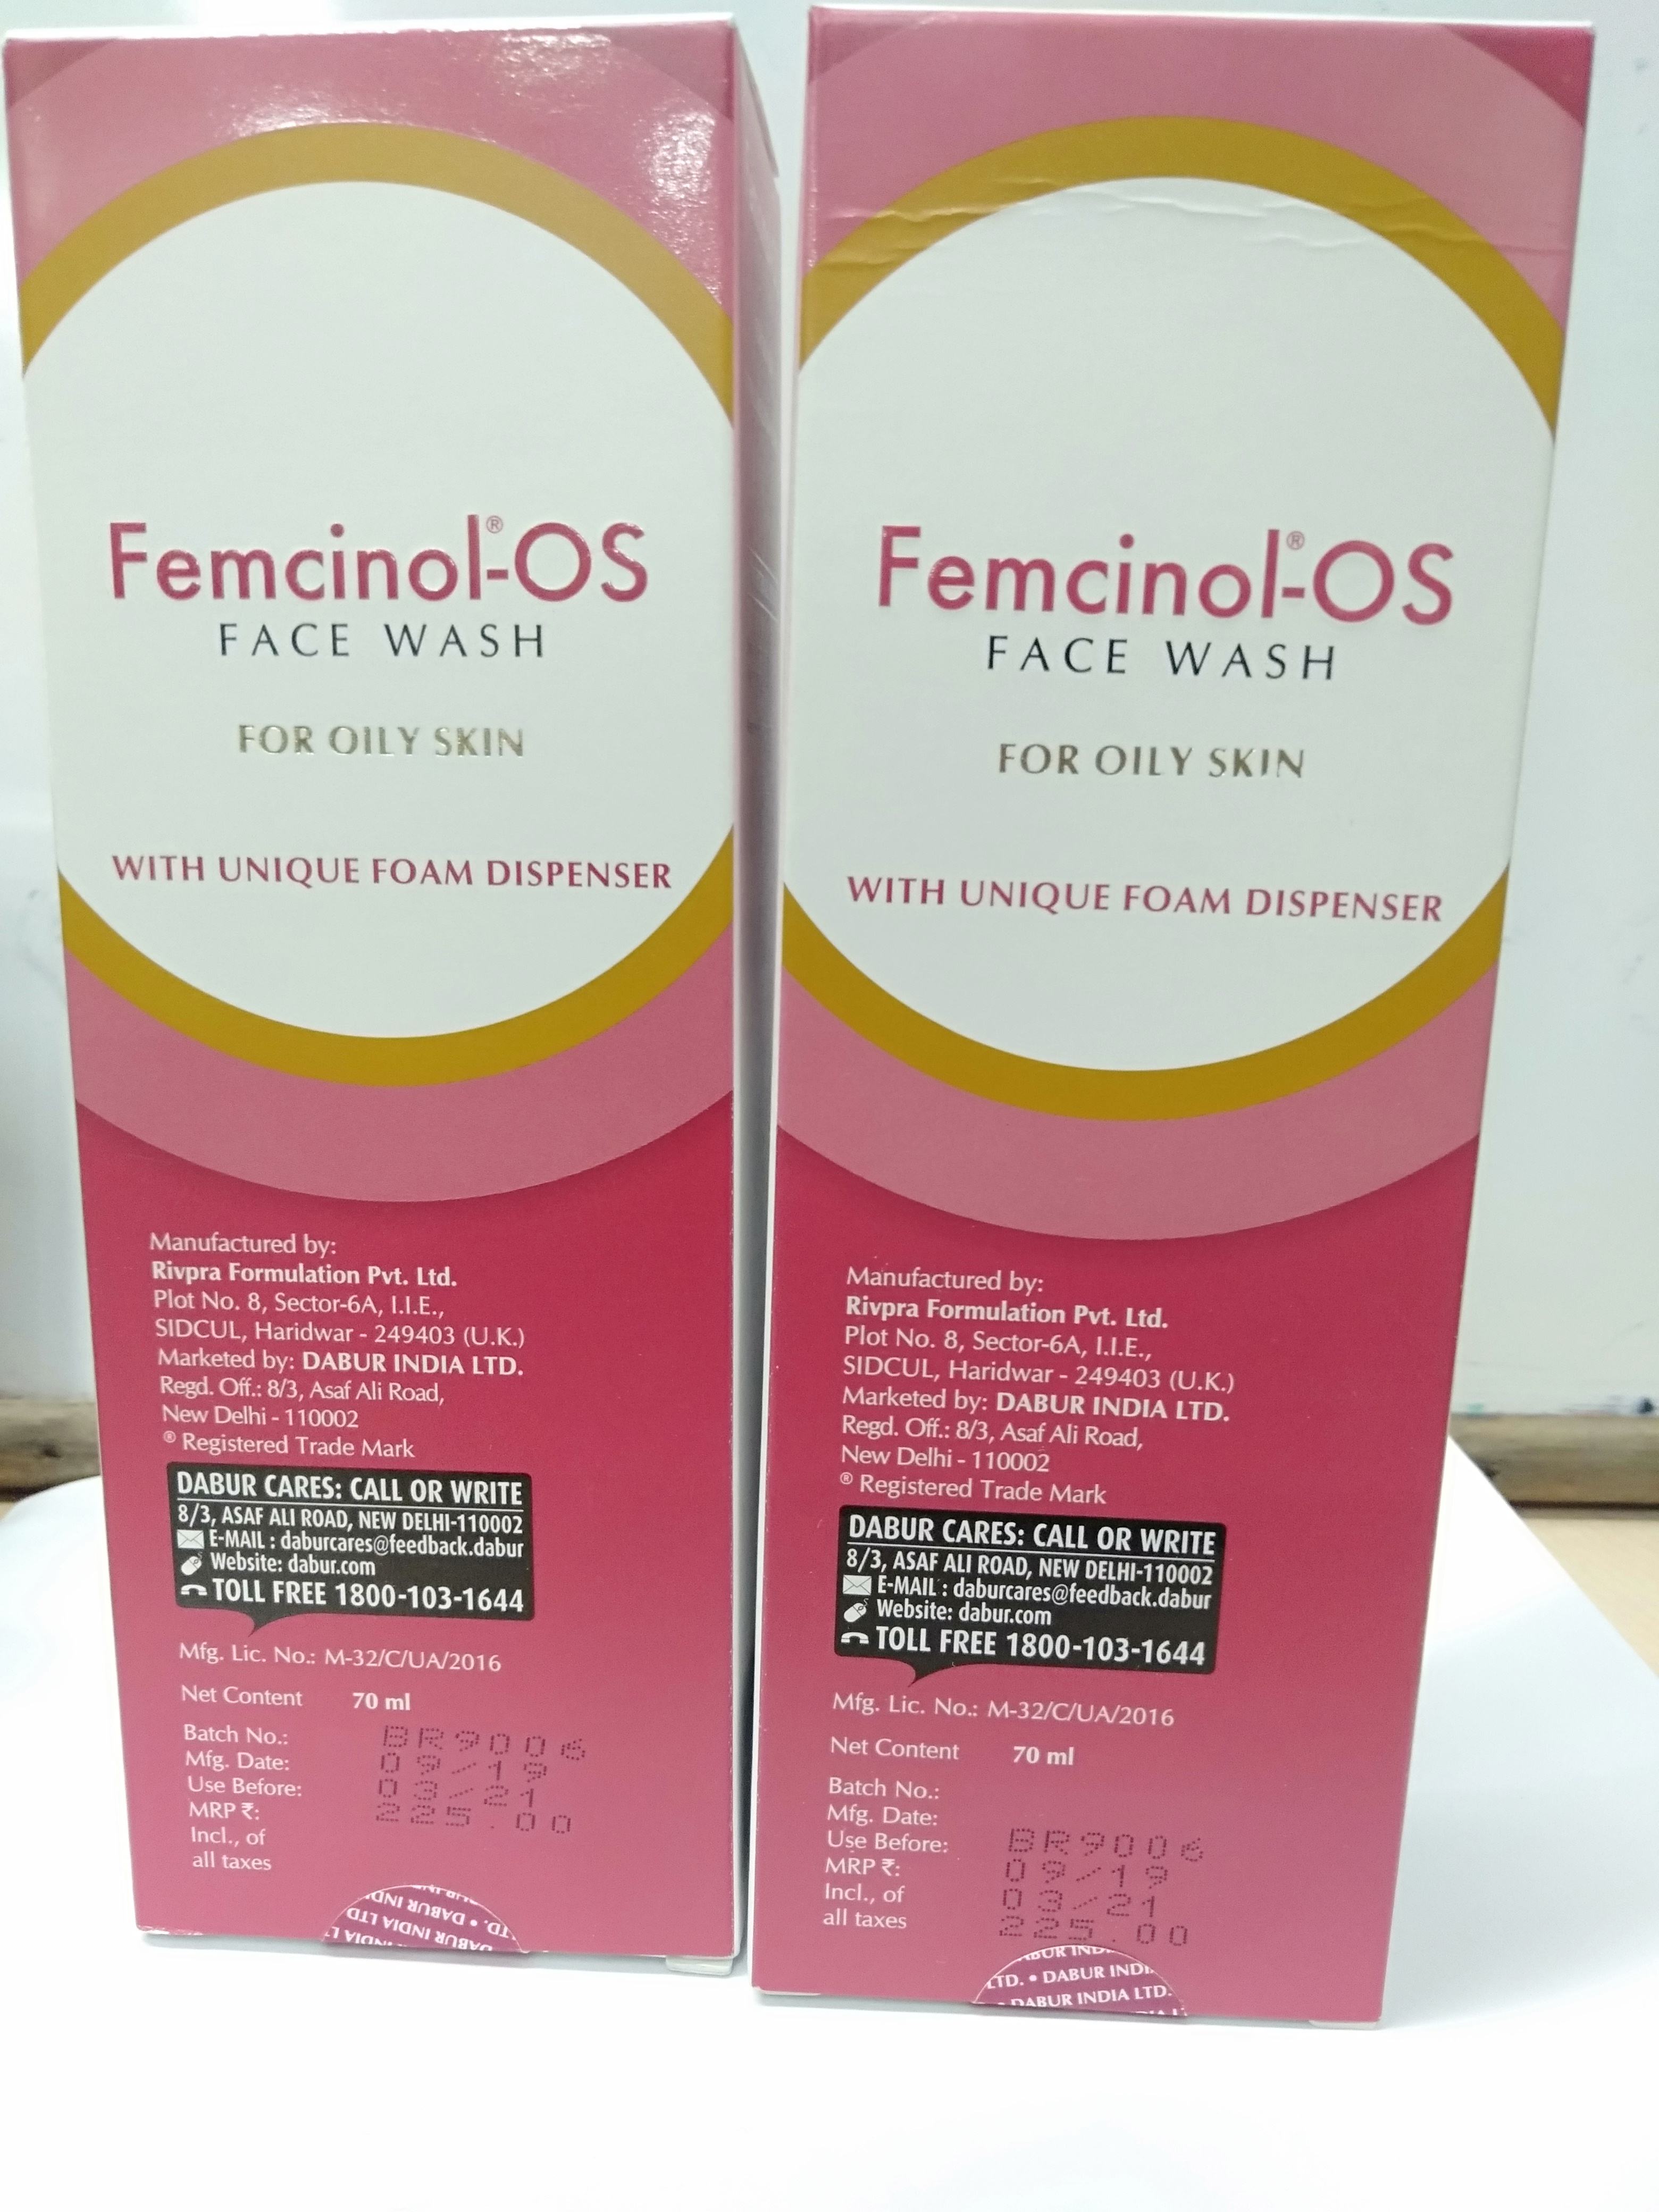 Femcinol Os Face Wash 70 ml pack up 2